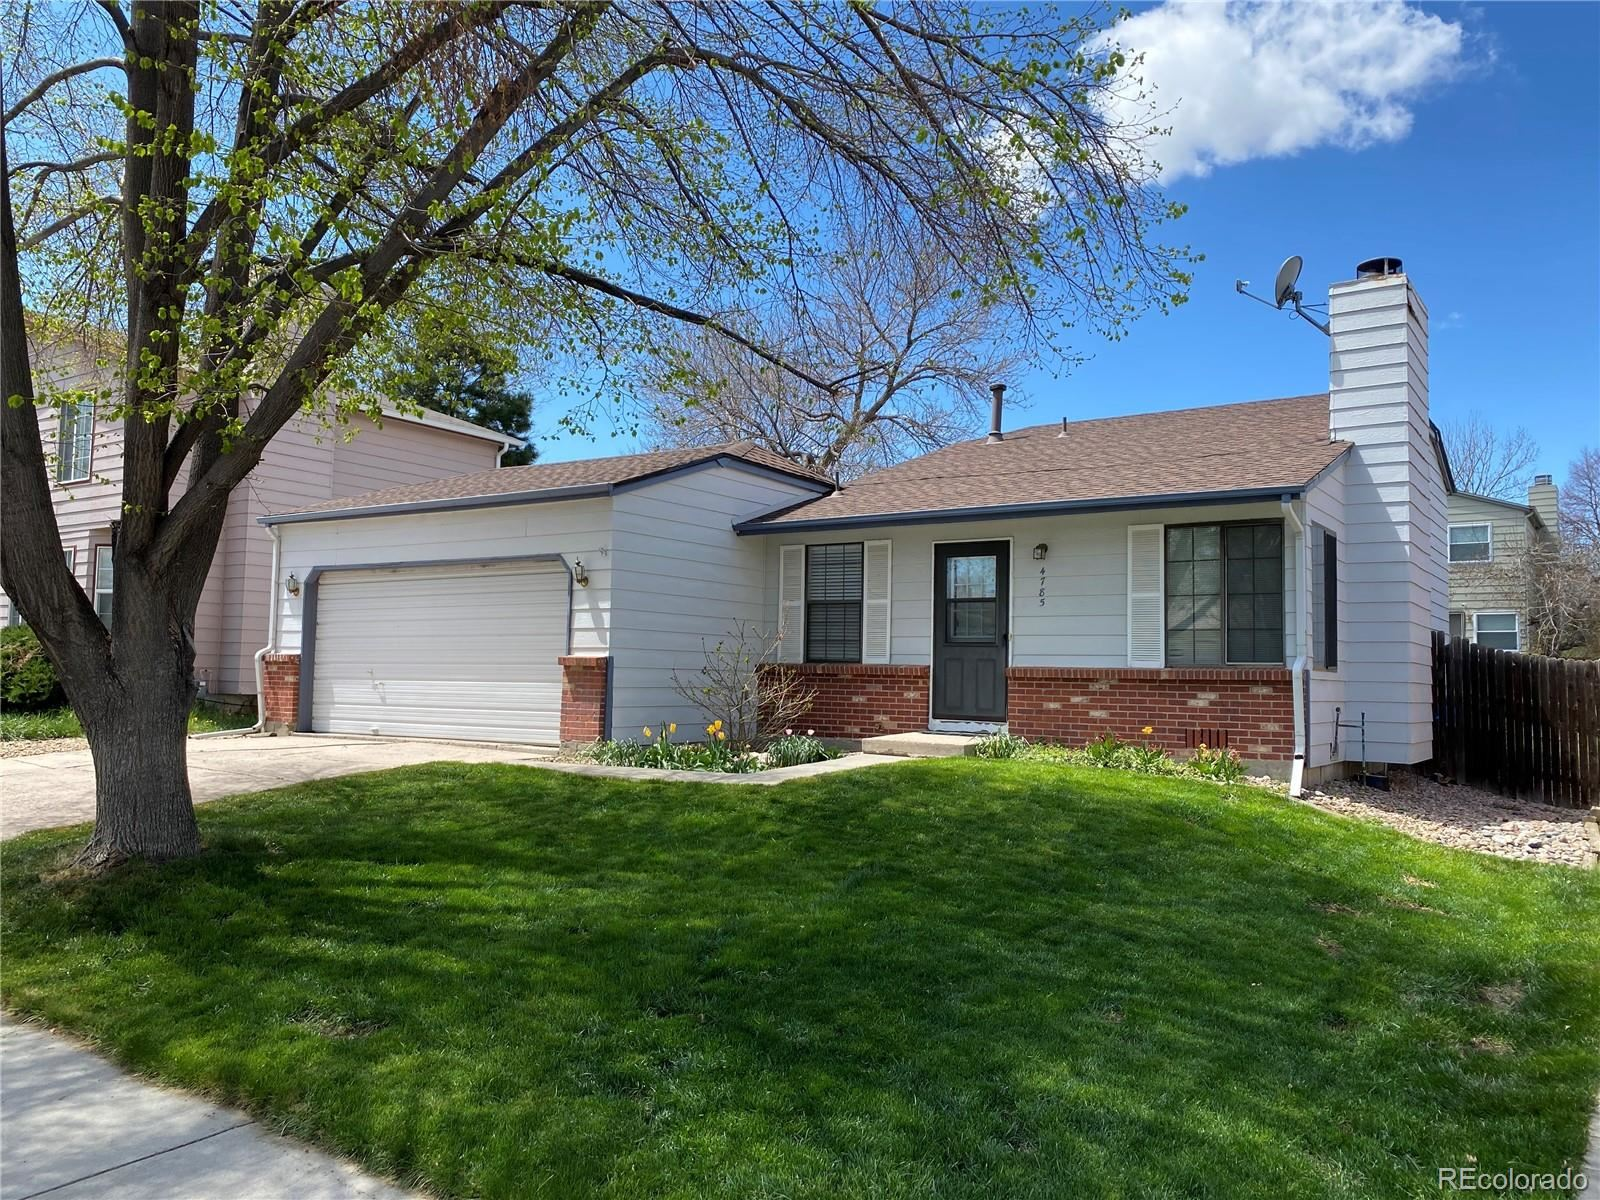 4785 S Pagosa Way, Aurora, CO 80015 - #: 5935137